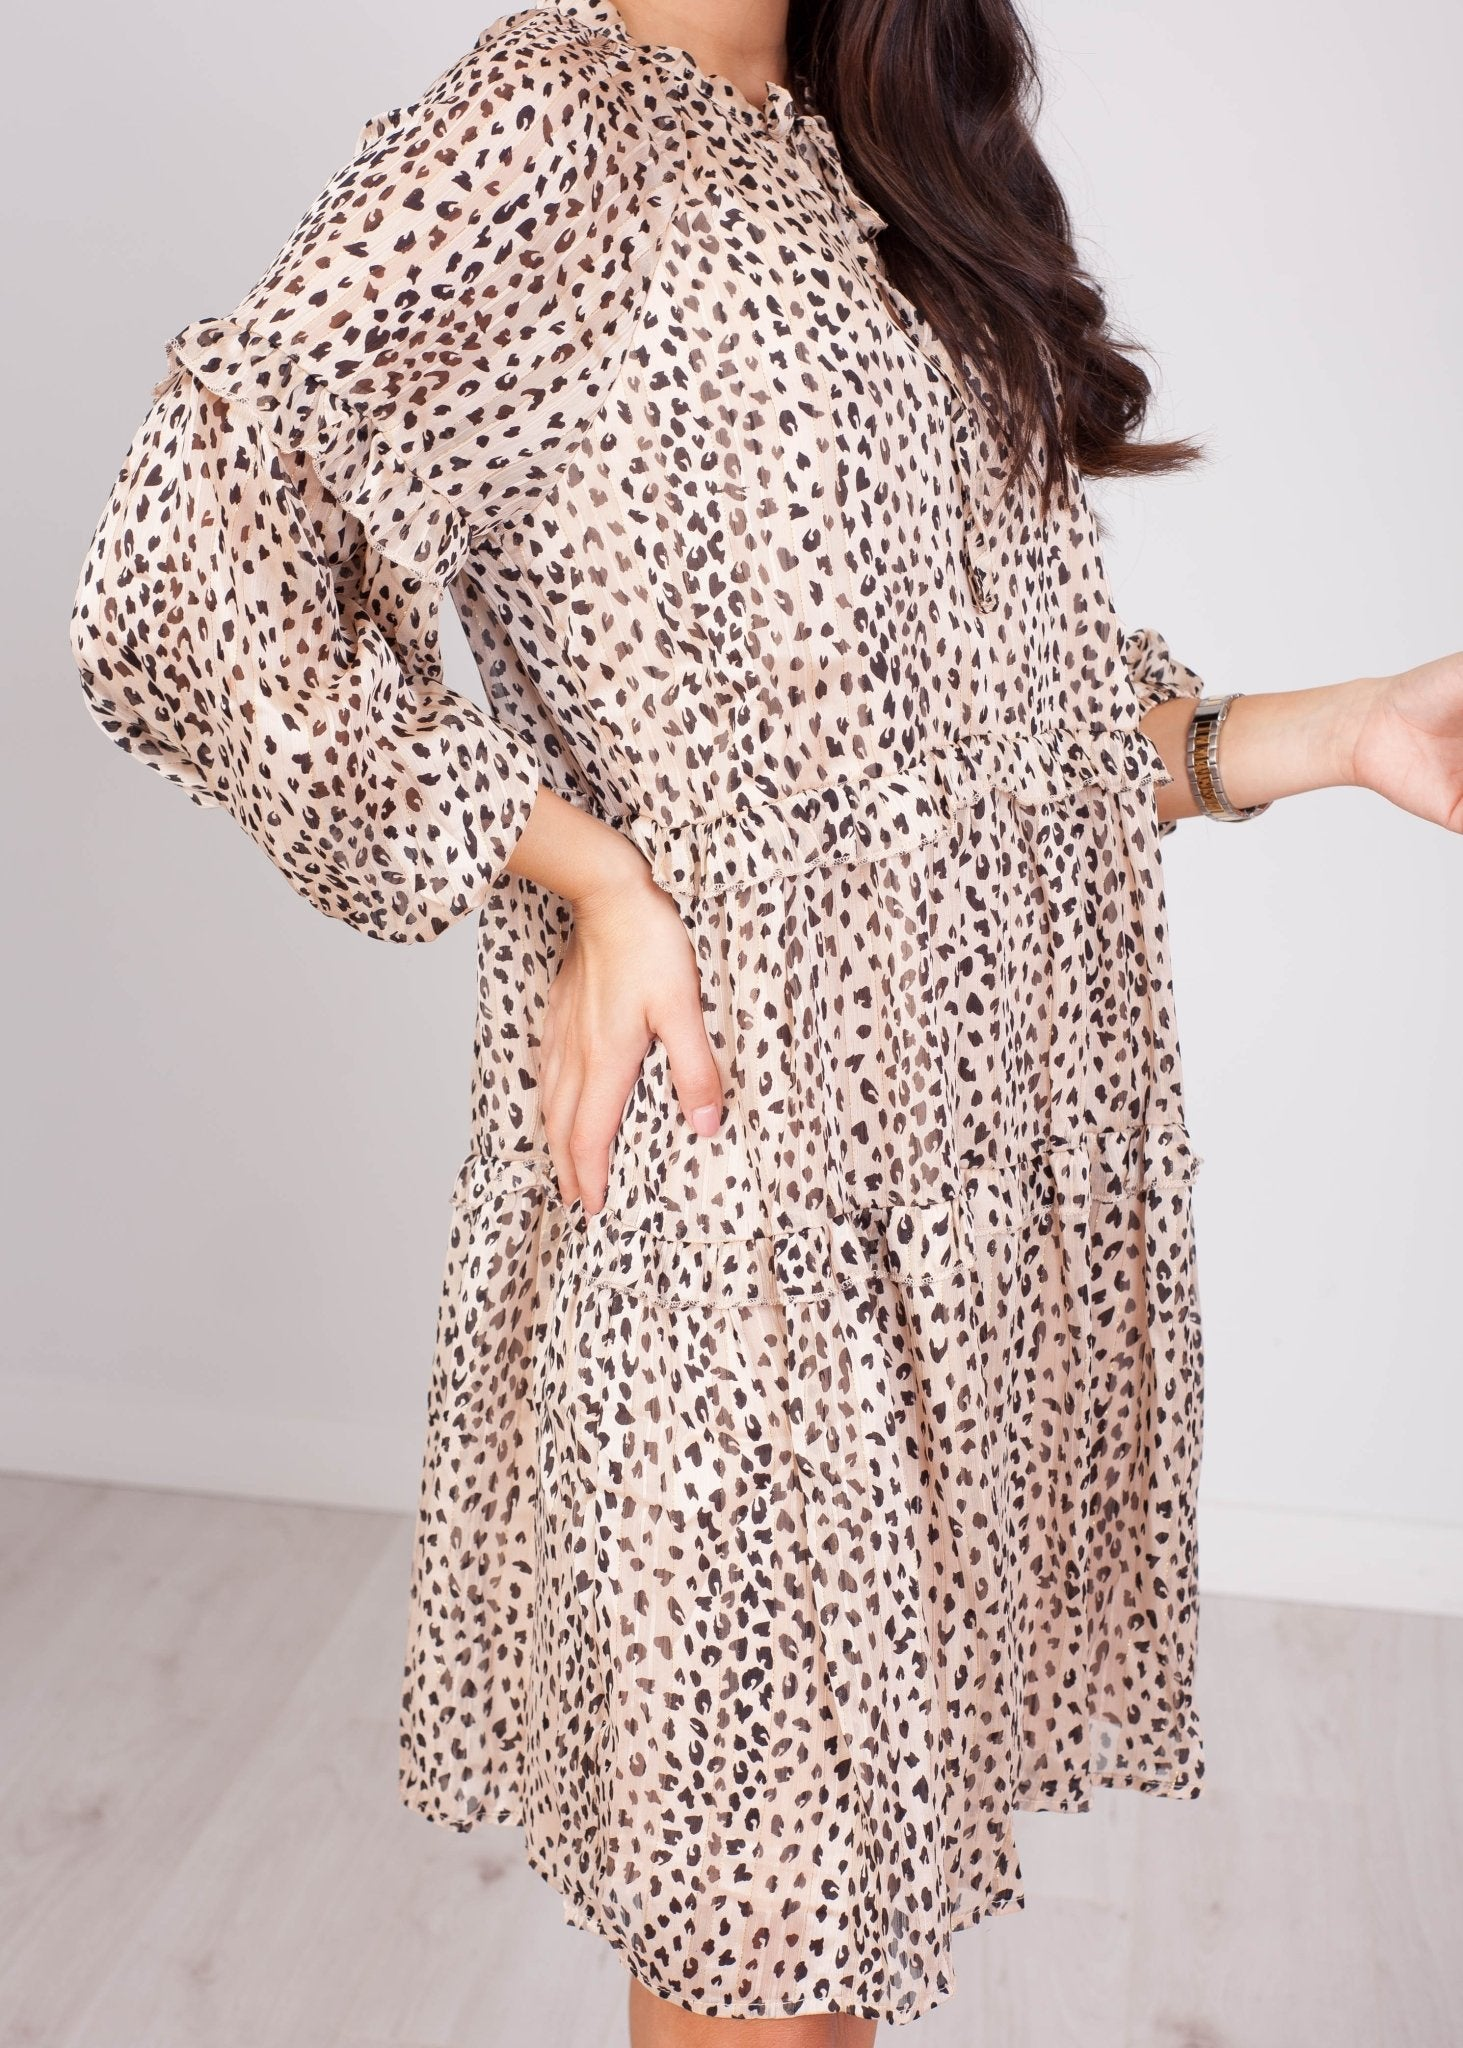 Cherie Animal Print Mini Dress - The Walk in Wardrobe